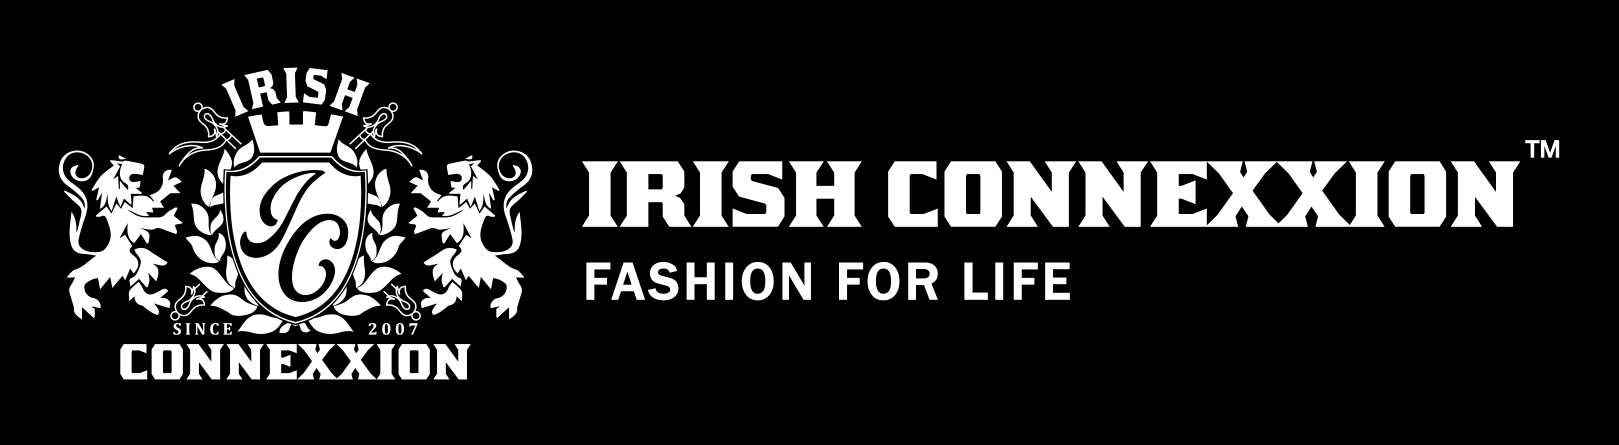 Irish Connexxion Clothing